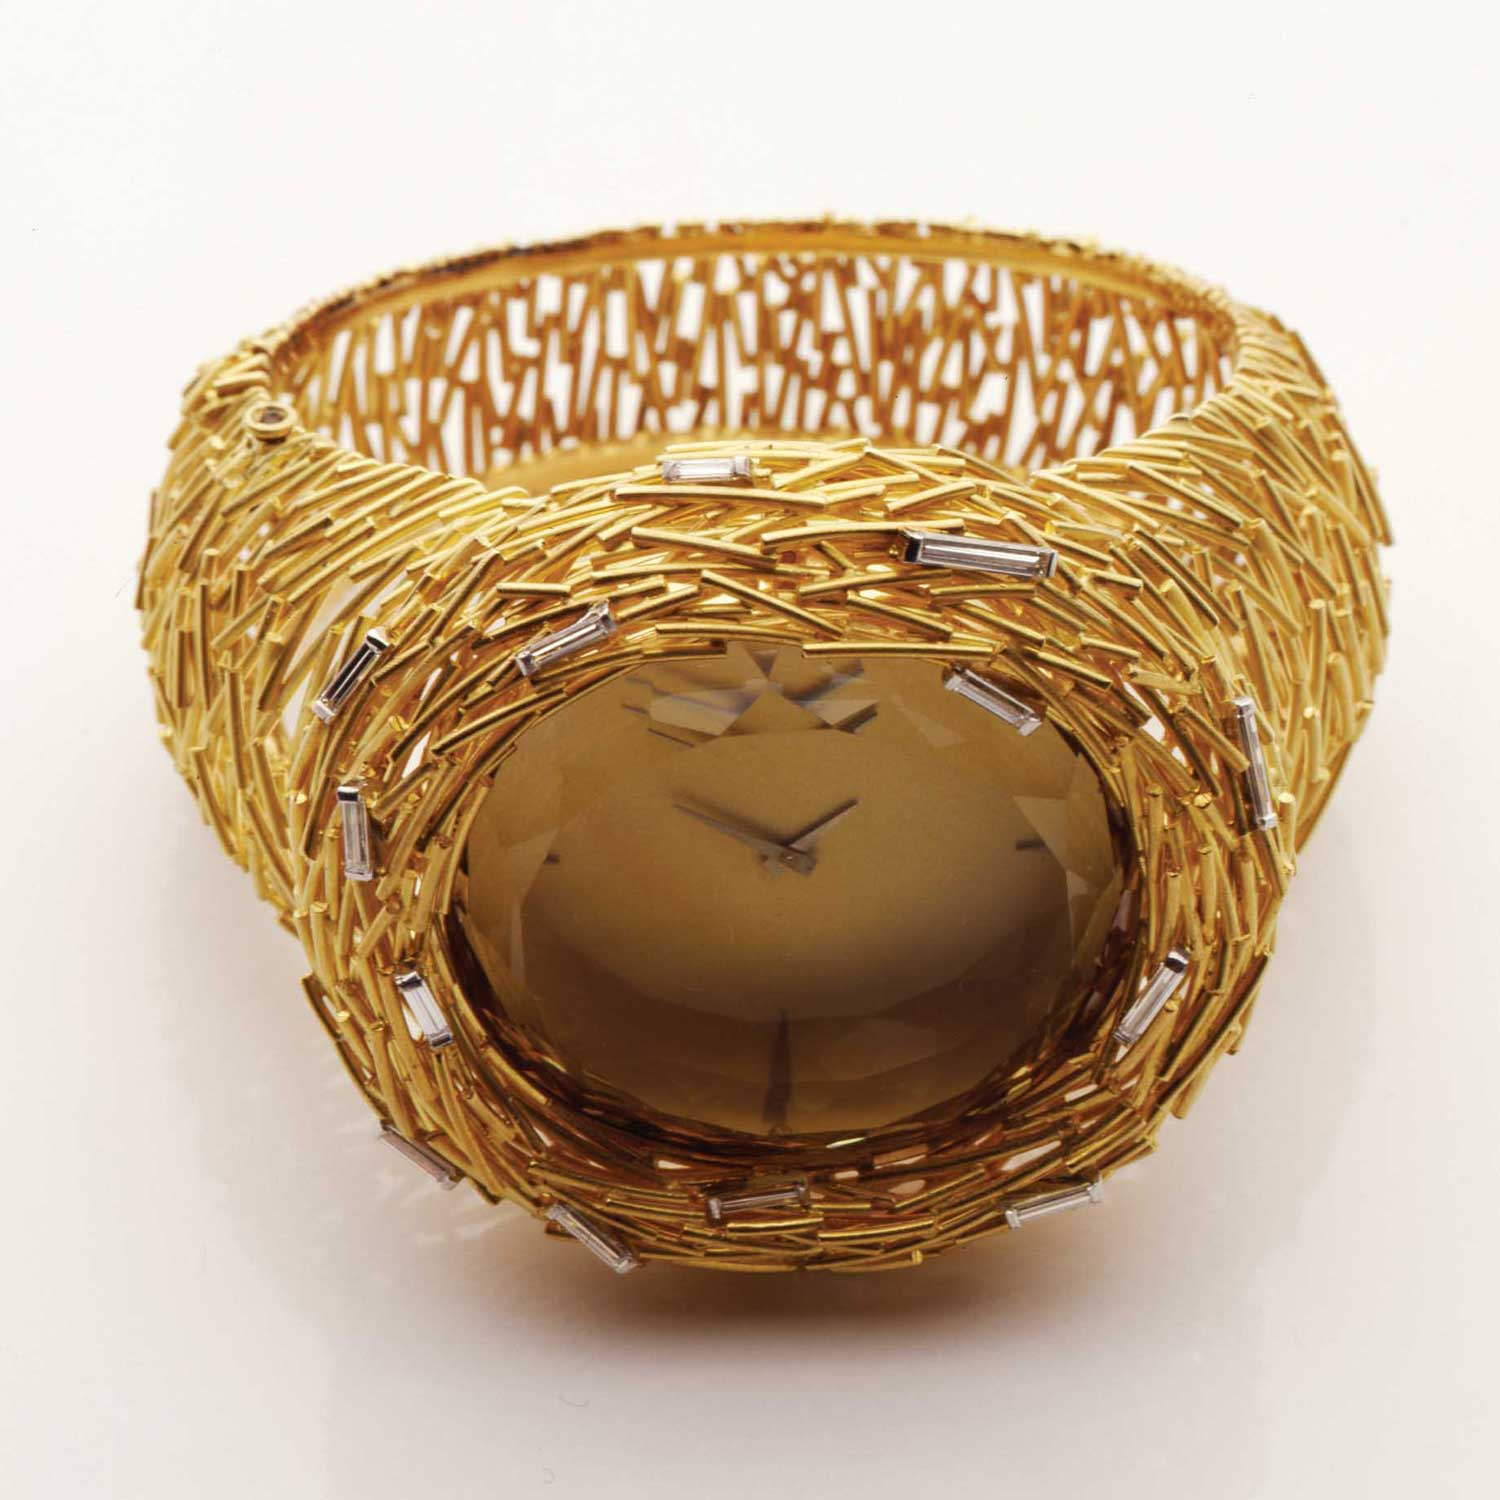 Also known as Matchstick, the Cerini watch is an example of Grima taking relatively humble forms such as the aforementioned pencil shaving or the piece of lichen that Princess Margaret brought back from the Balmoral estate to be cast in yellow gold. The vivid yellow citrine is a magnificent stone around which Grima weaves a basket of yellow gold matchsticks that sit on top of a bracelet of irregularly interlinked matchstick motifs. Grima famously used white diamonds as accents rather than principal stones